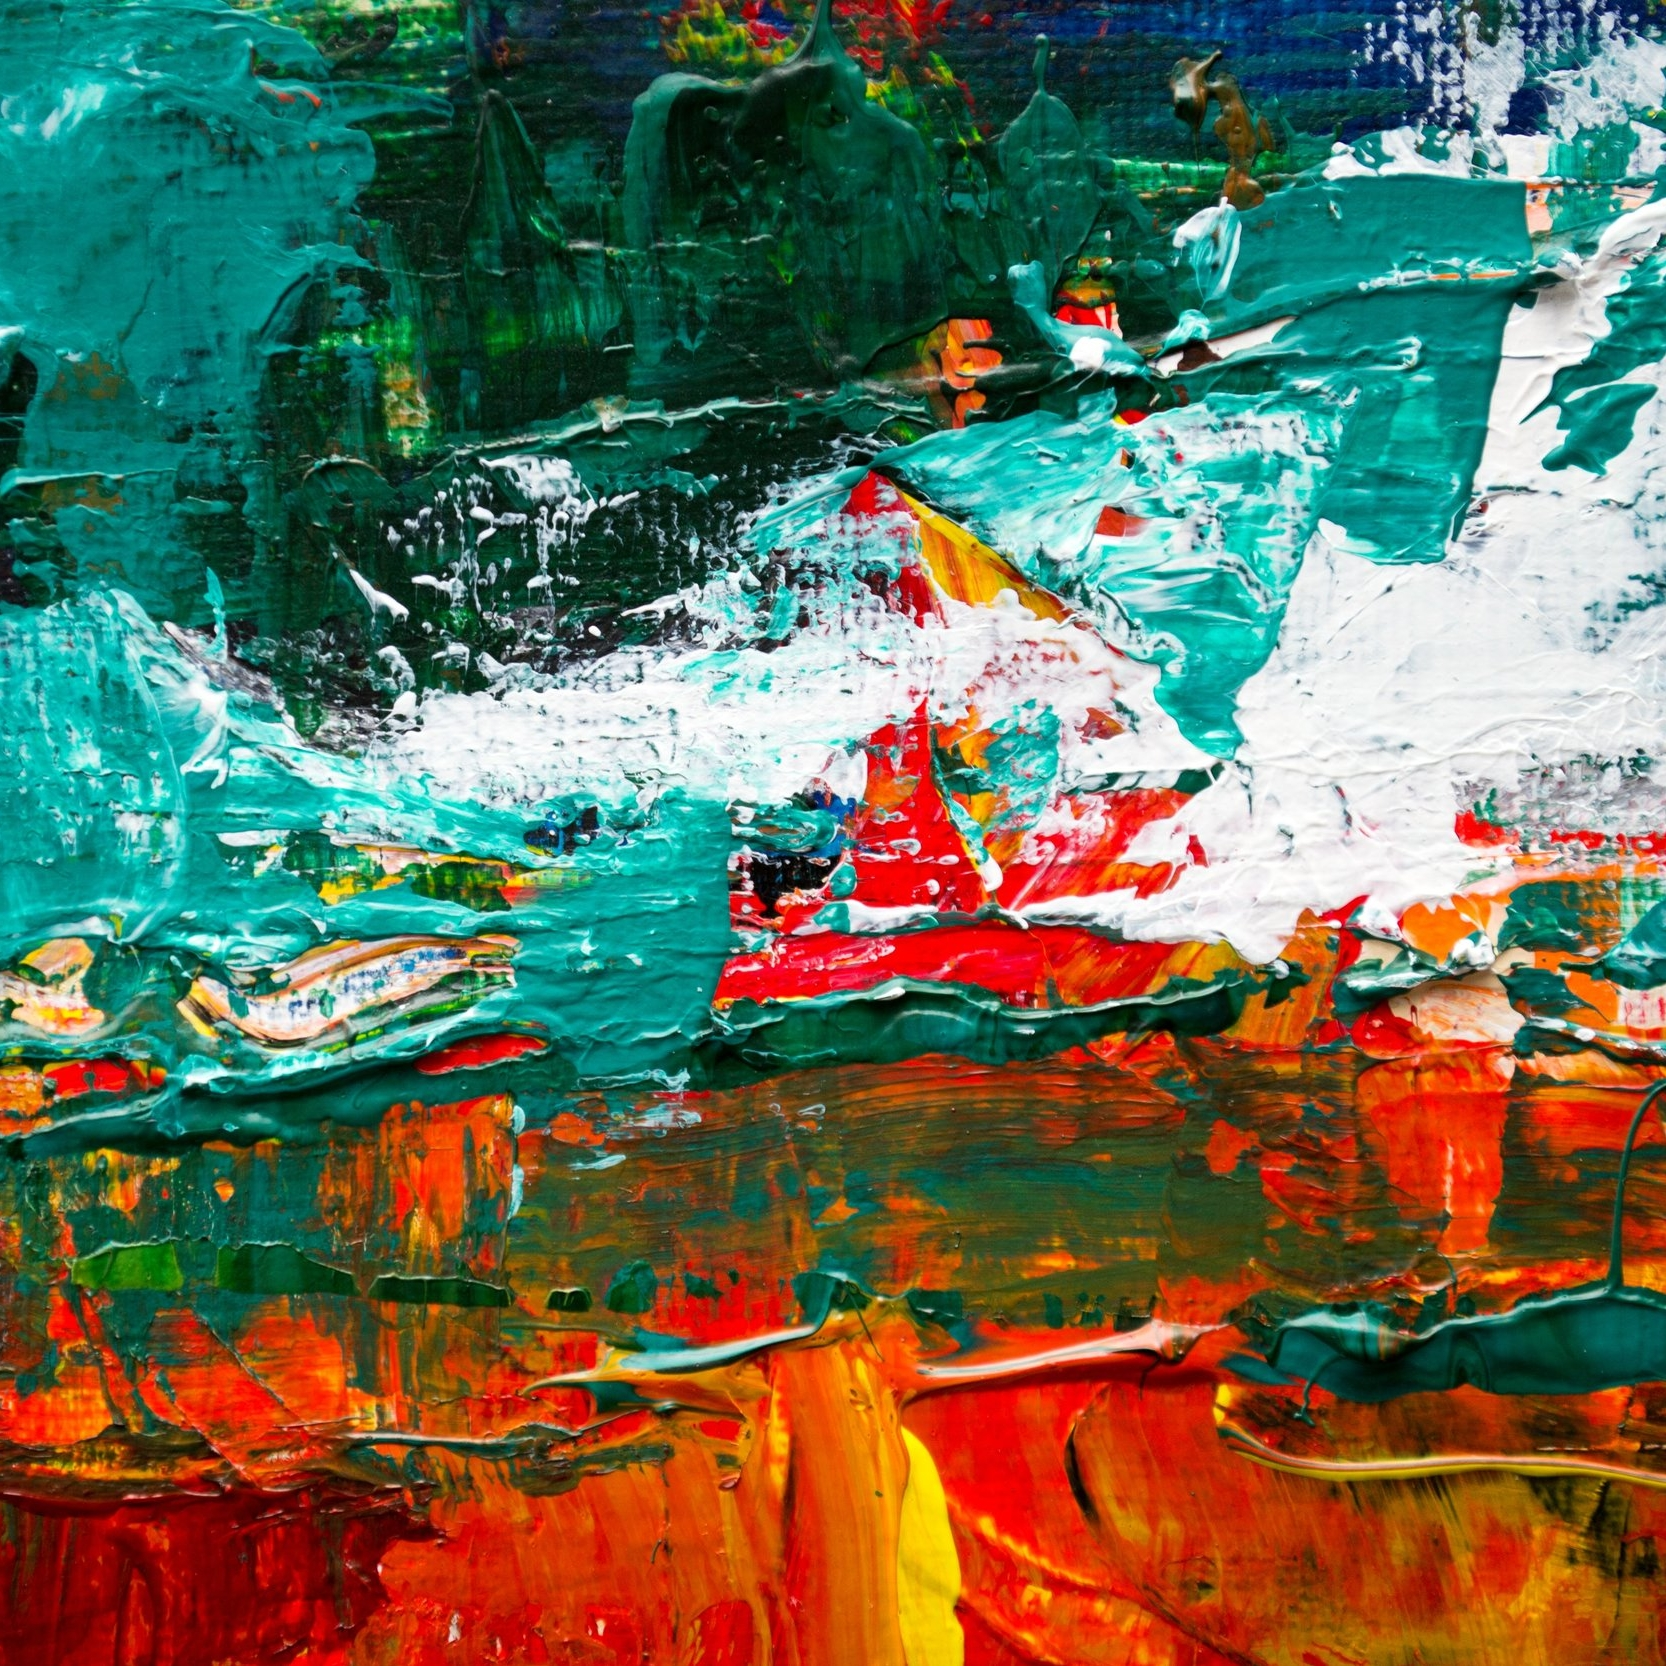 abstract-abstract-painting-acrylic-1070534.jpg